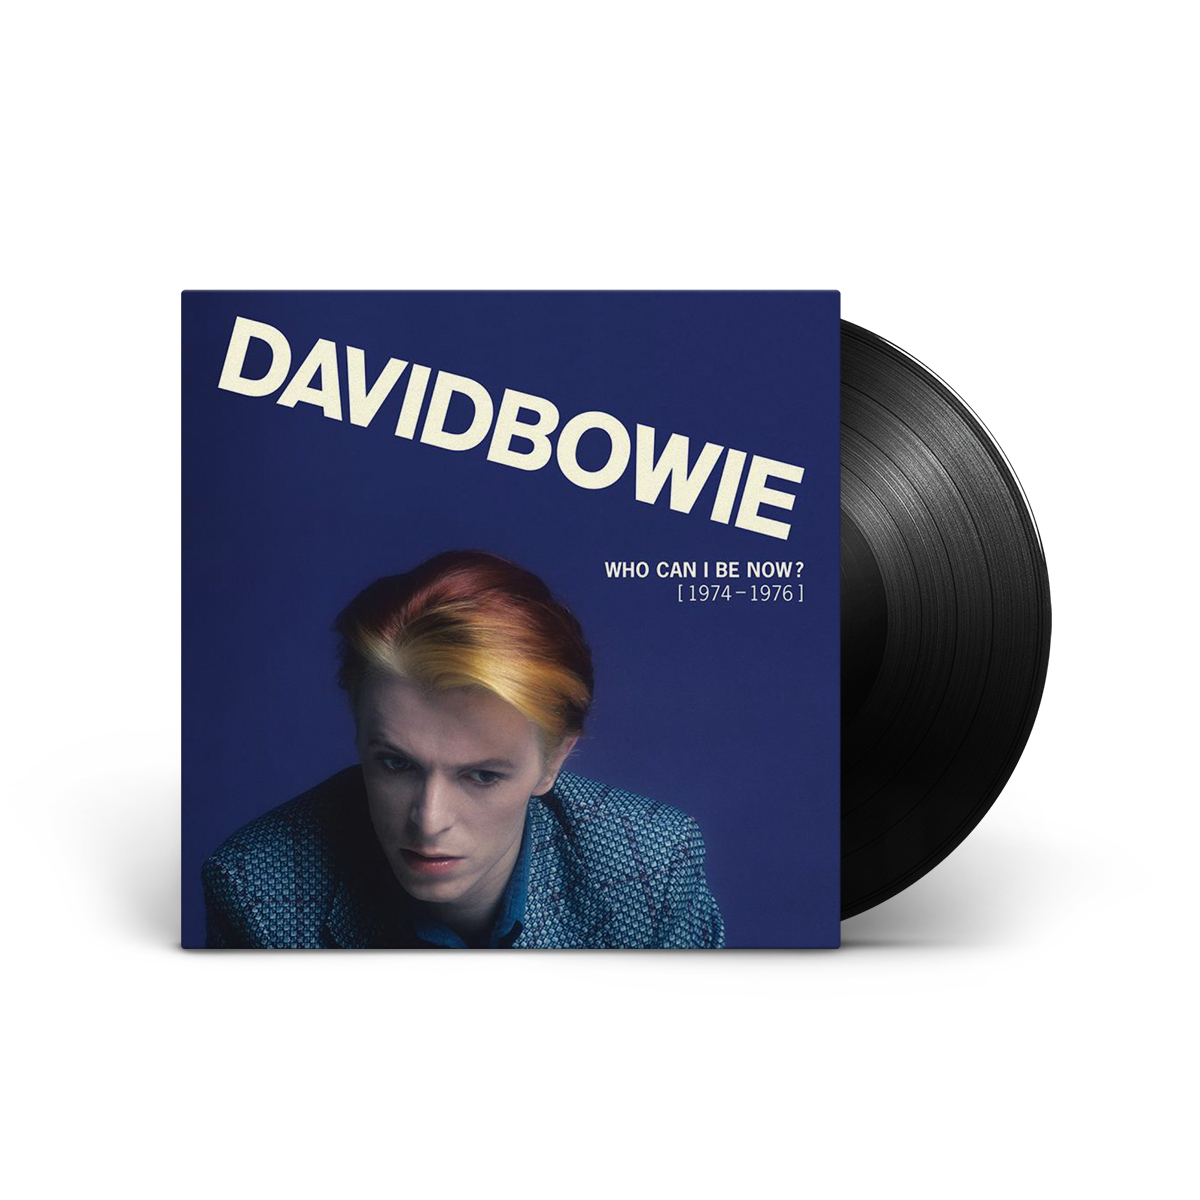 David Bowie Who Can I Be Now? (1974 to 1976)(13LP 180 GramVinyl) LP